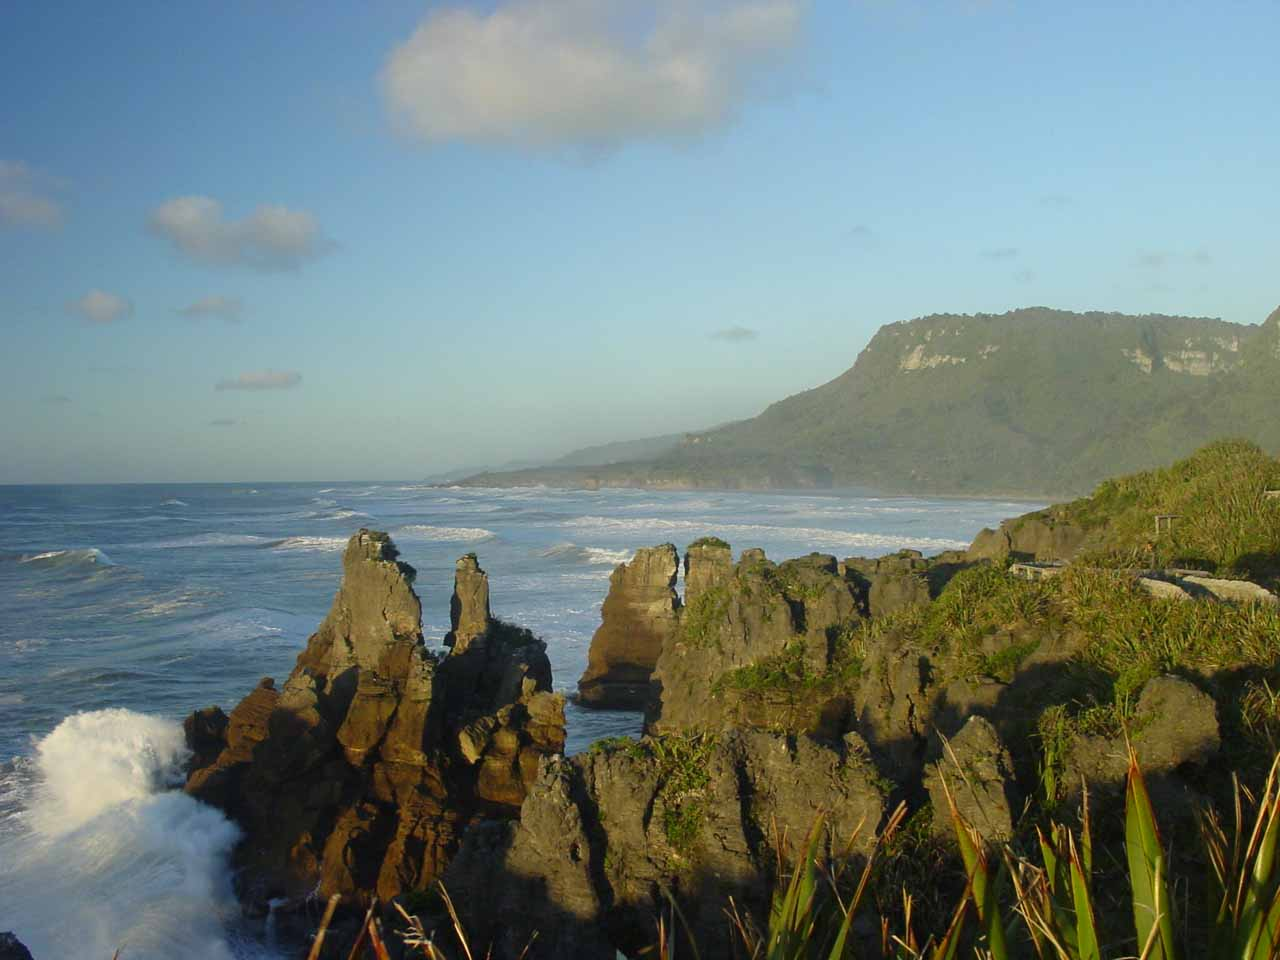 On the evening before we visited Arthur's Pass, we managed to go north of Greymouth to Punakaiki and the Pancake Rocks at sunset